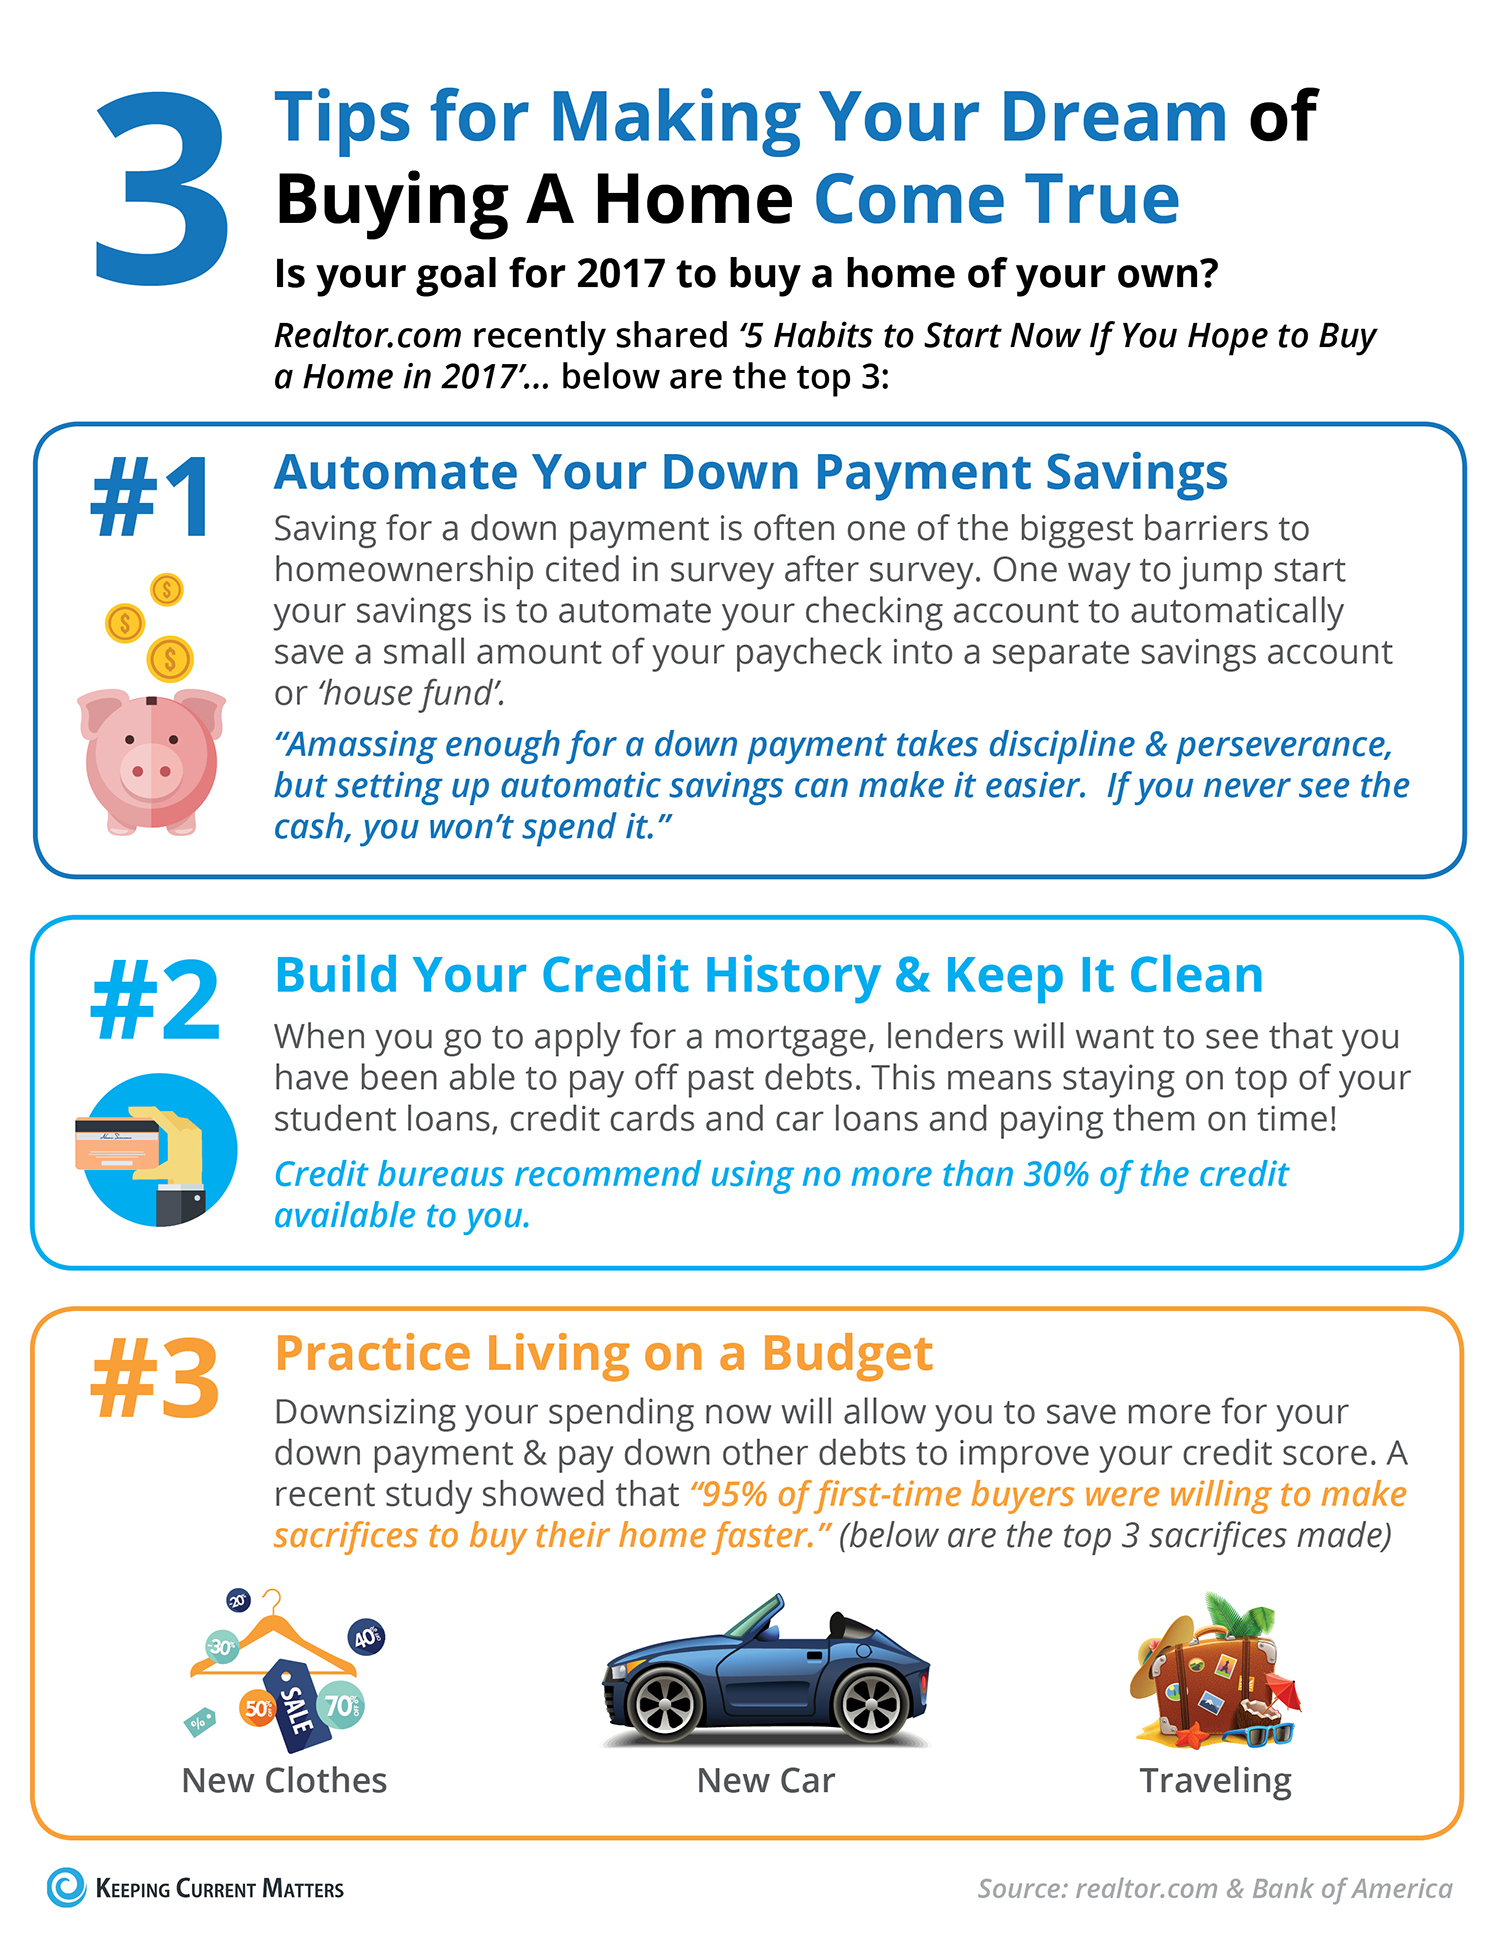 3 Tips for Making Your Dream of Buying a Home Come True [INFOGRAPHIC]   Keeping Current Matters